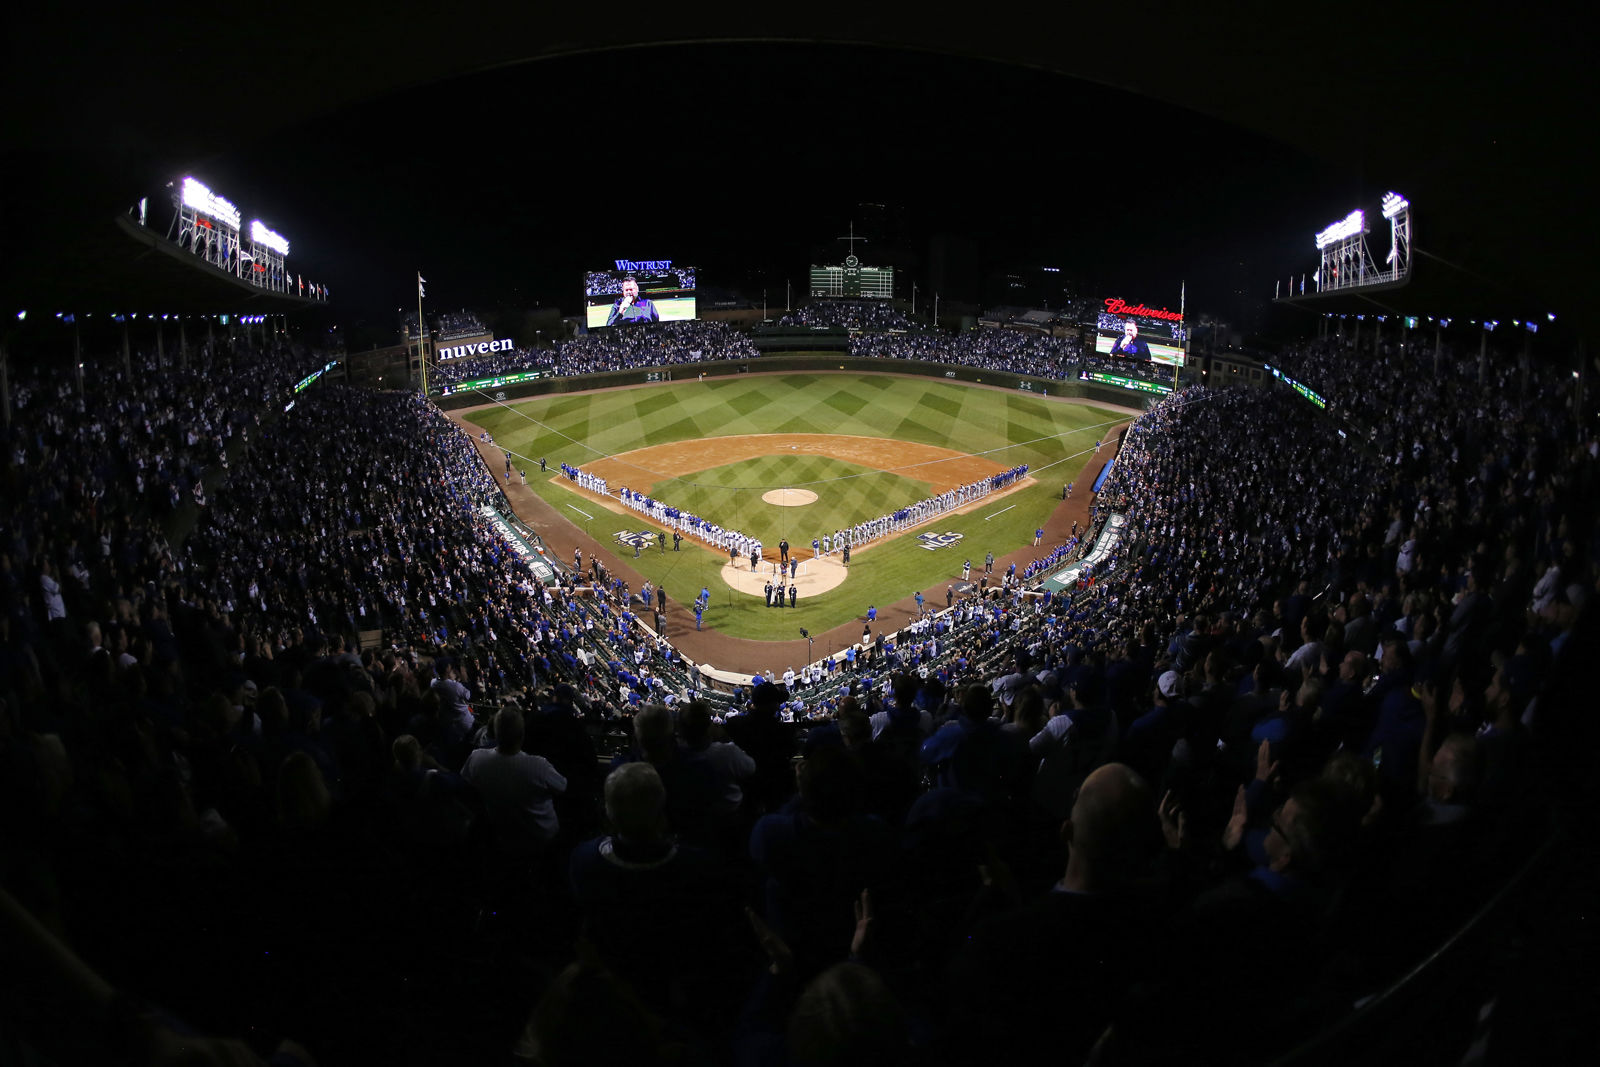 Wrigley Field is one of the most iconic stadiums in sports, but it has undergone some major changes in recent years. It comes in at No. 9 on the list with an average cost of $76.17. File. (AP Photo/Kiichiro Sato)